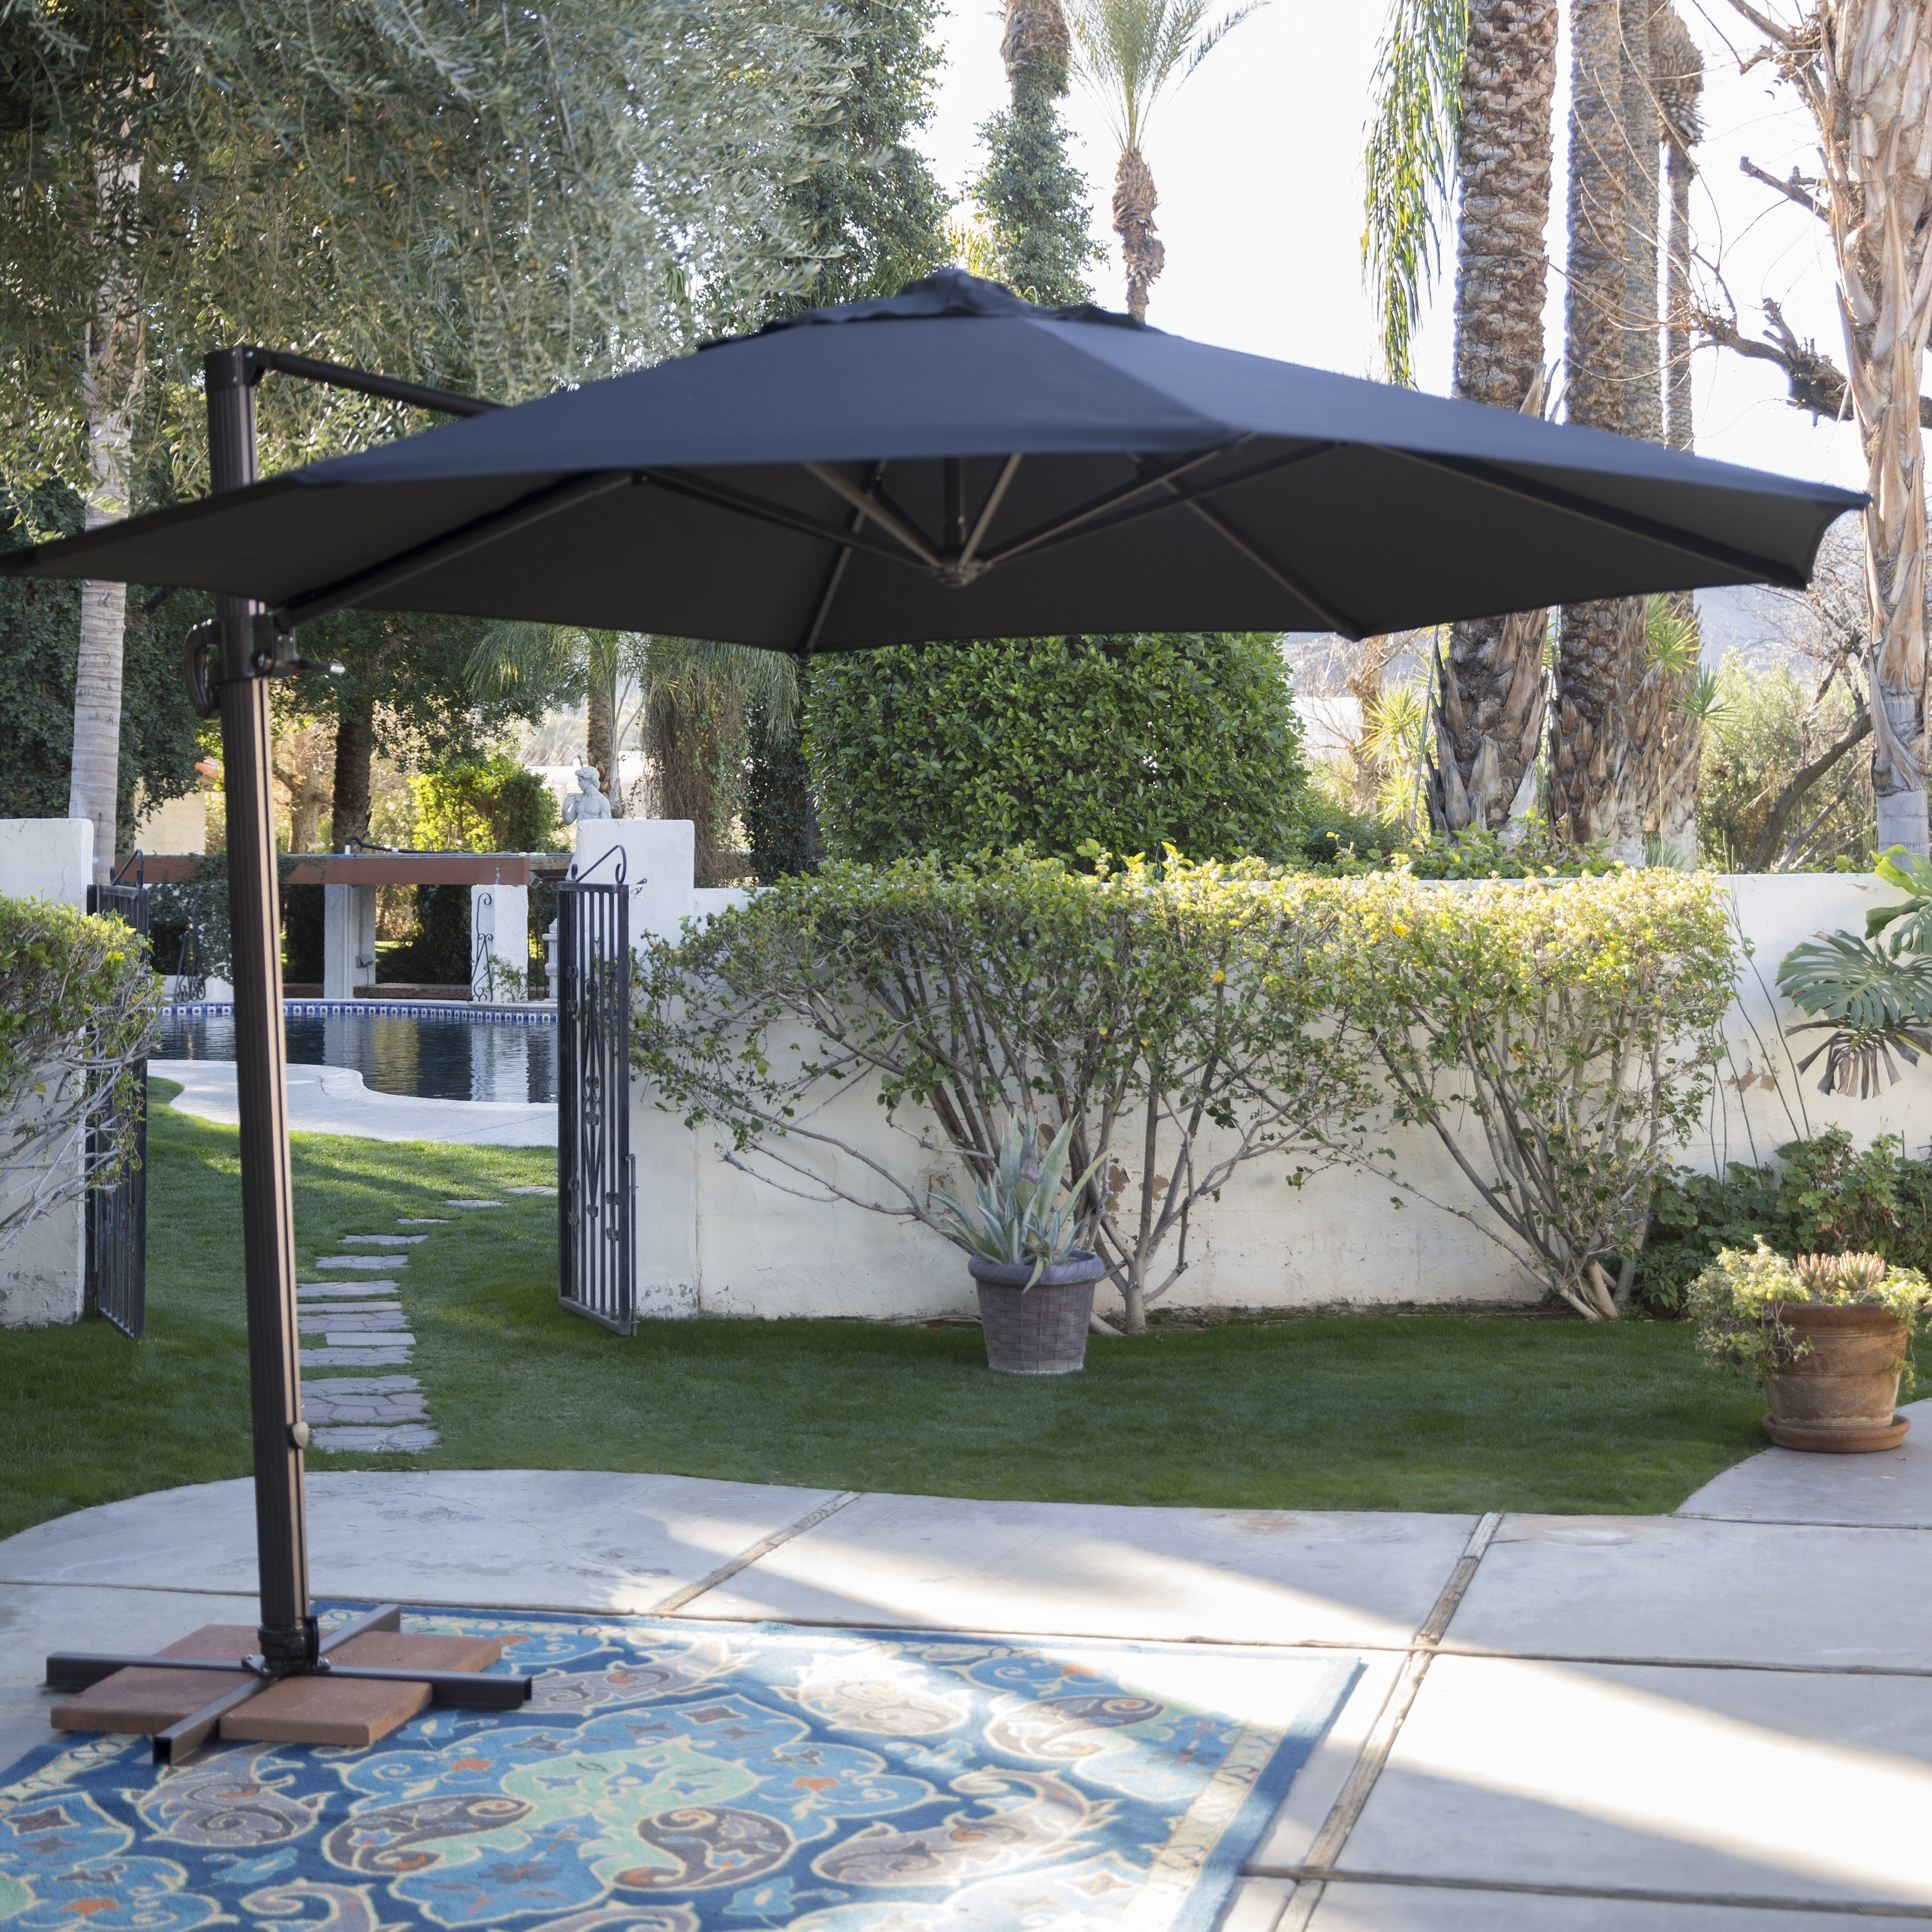 11 Ft. Sunbrella Patio Umbrellas With Regard To Newest Coral Coast 11 Ft (View 6 of 20)